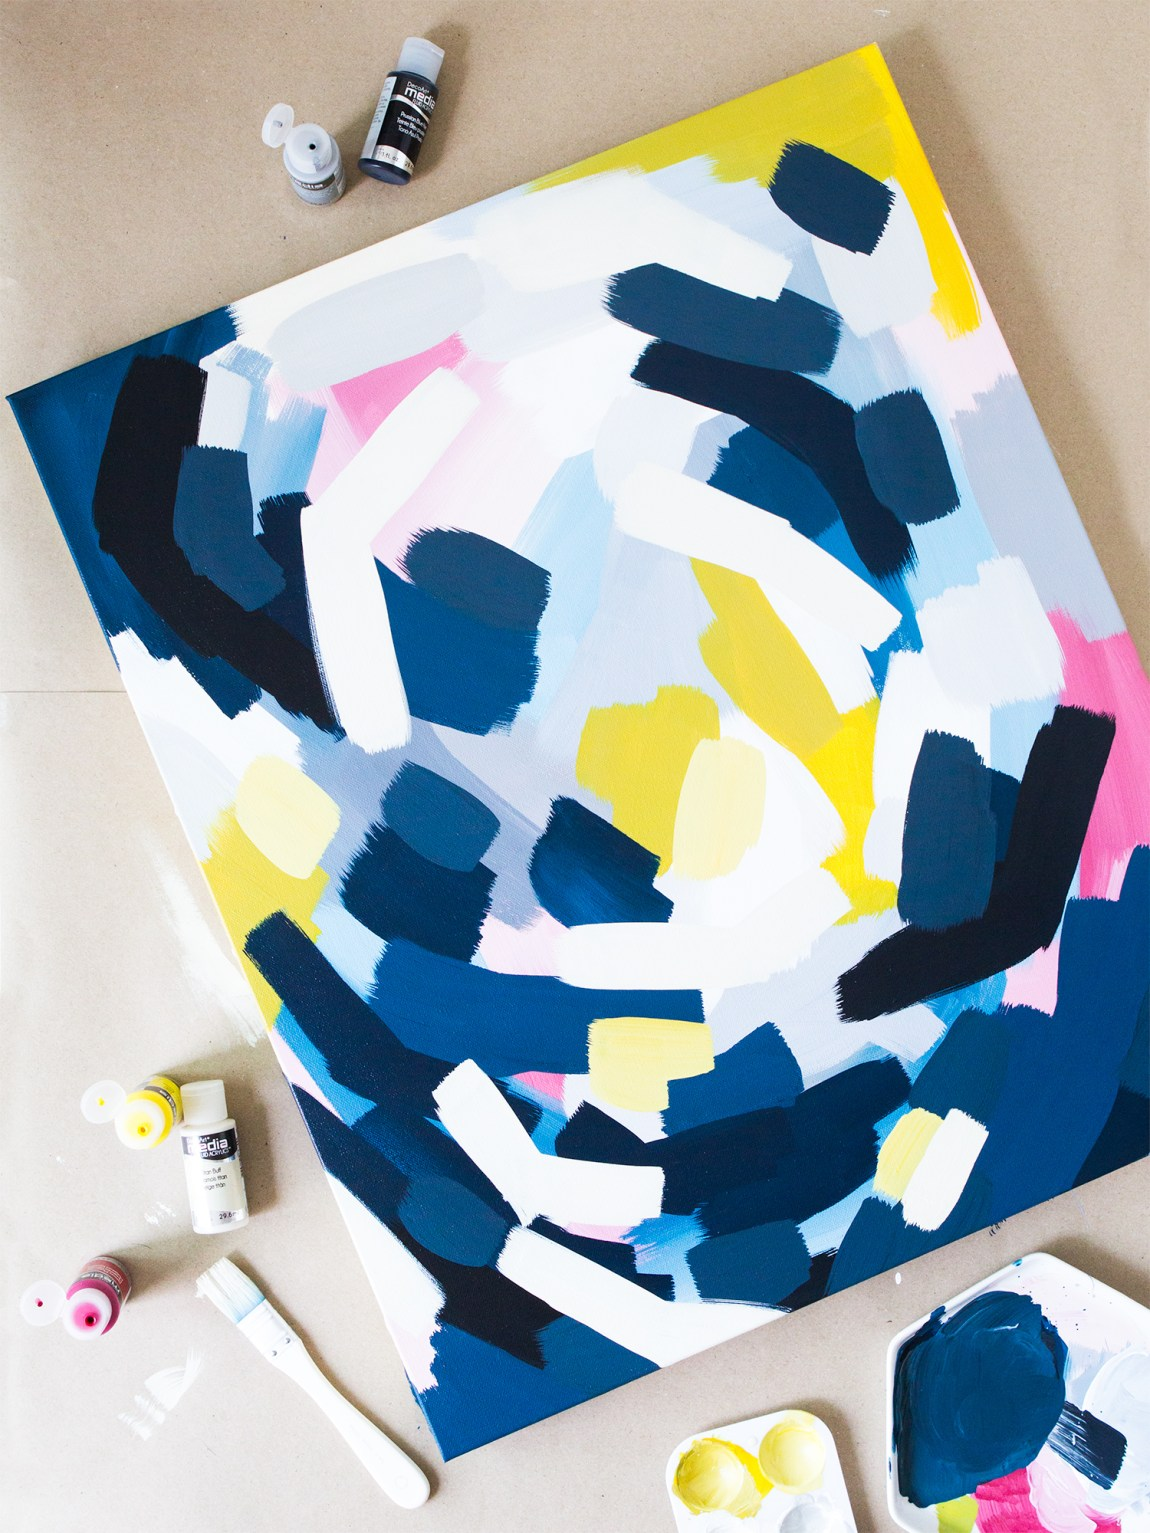 Create your own abstract wall art with this easy to follow tutorial using DecoArt mixed media paints. (Click through to see the process video!)